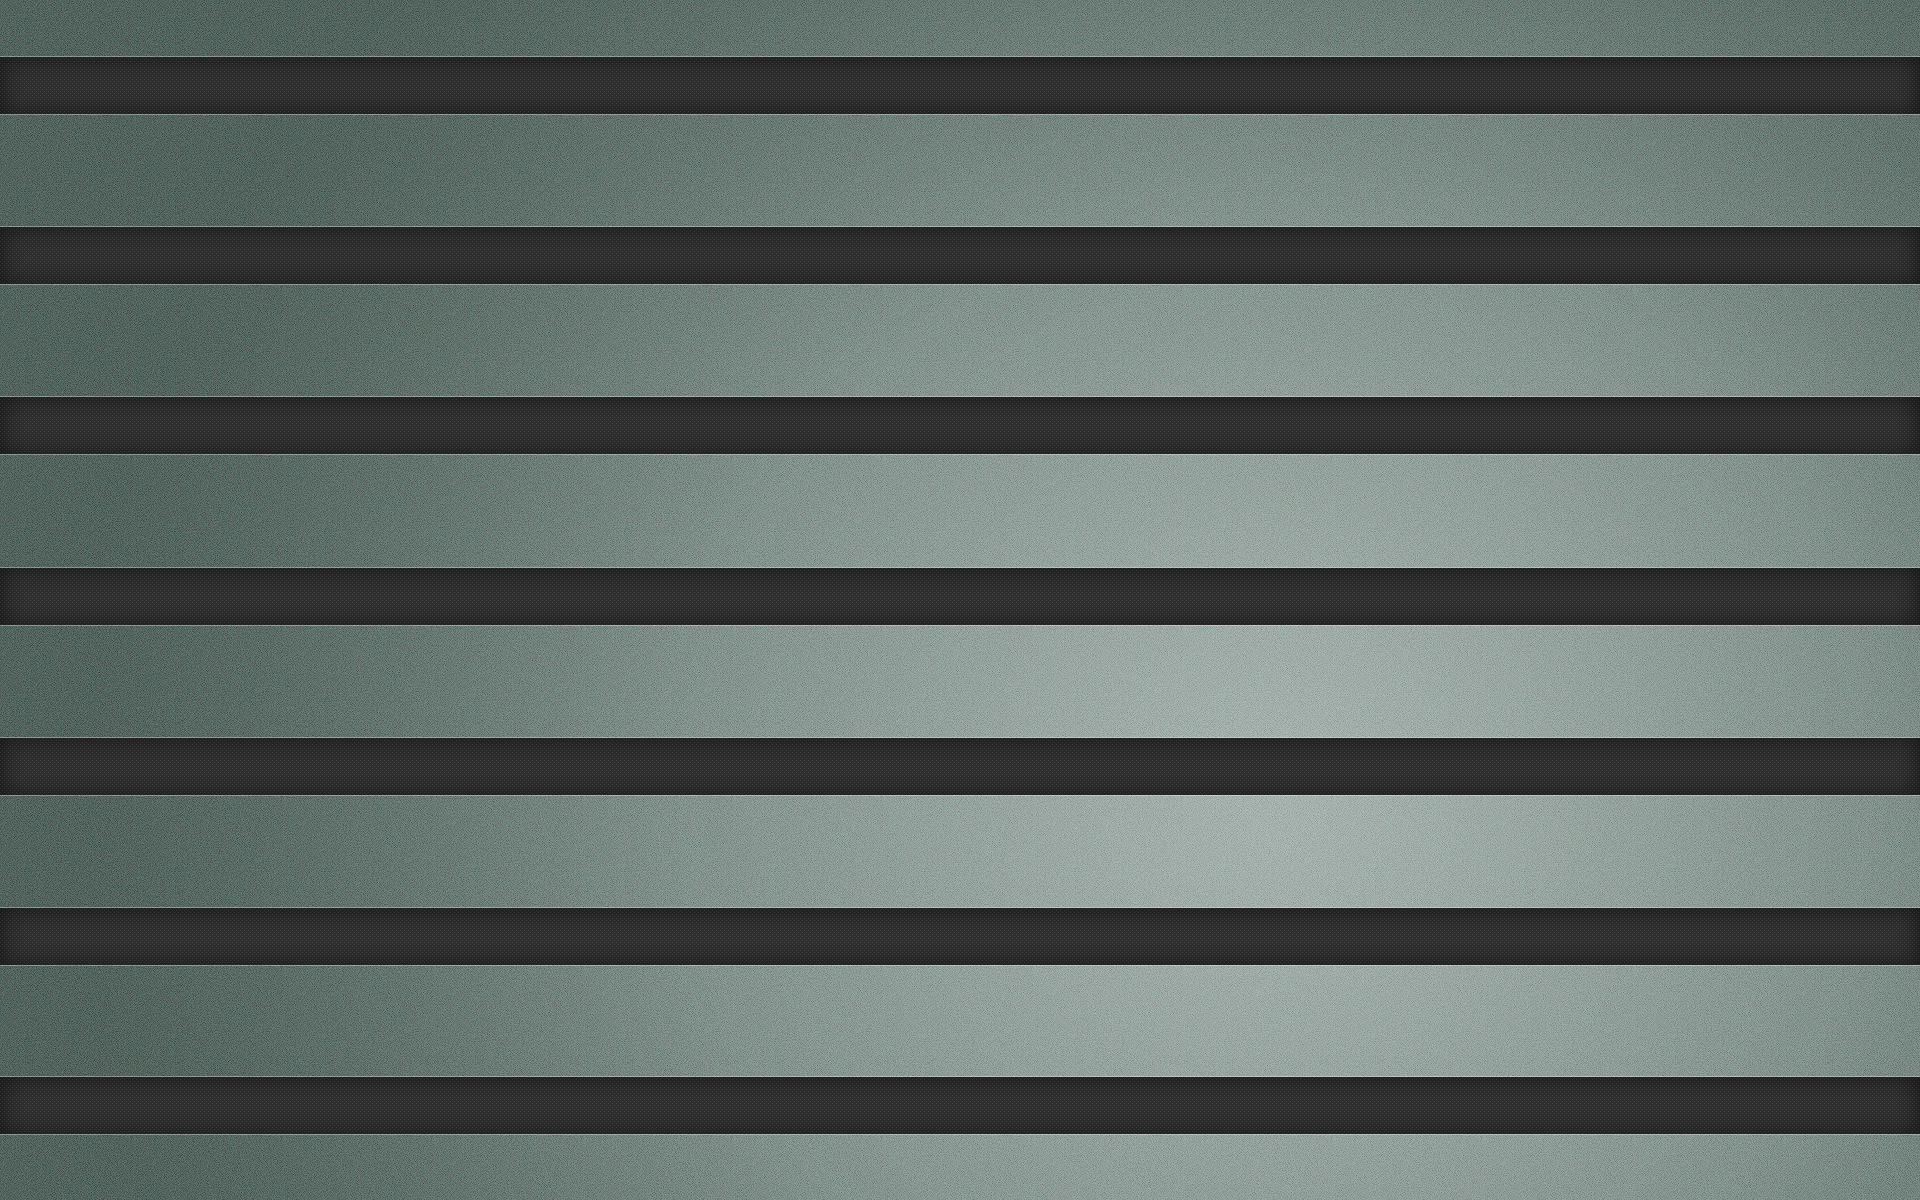 horizontal lines, texture, lines texture, backgrounds, background for website